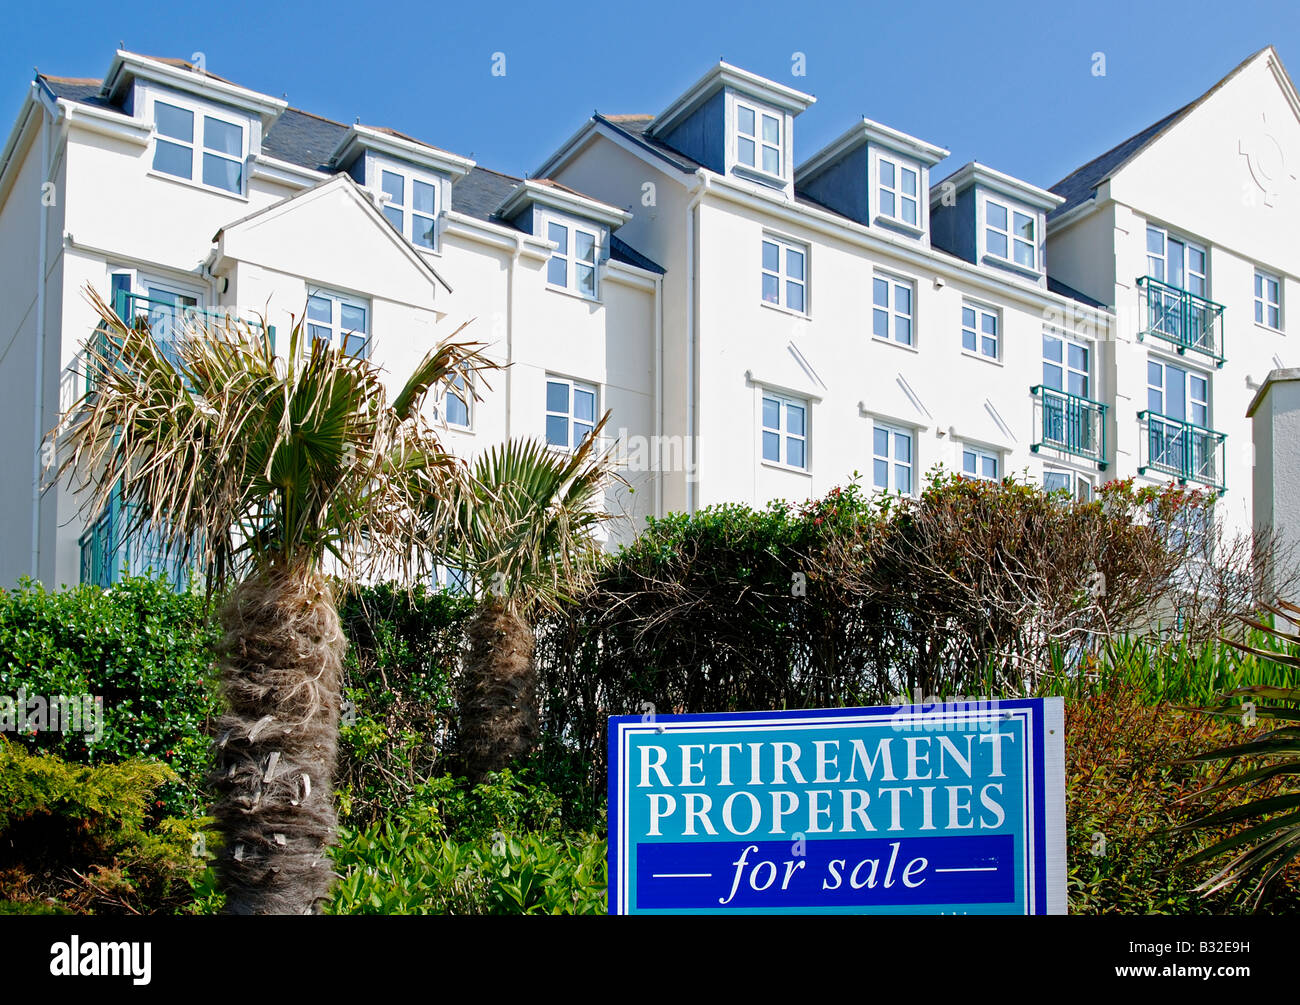 seafront retirement properties for sale at falmouth,cornwall,uk - Stock Image